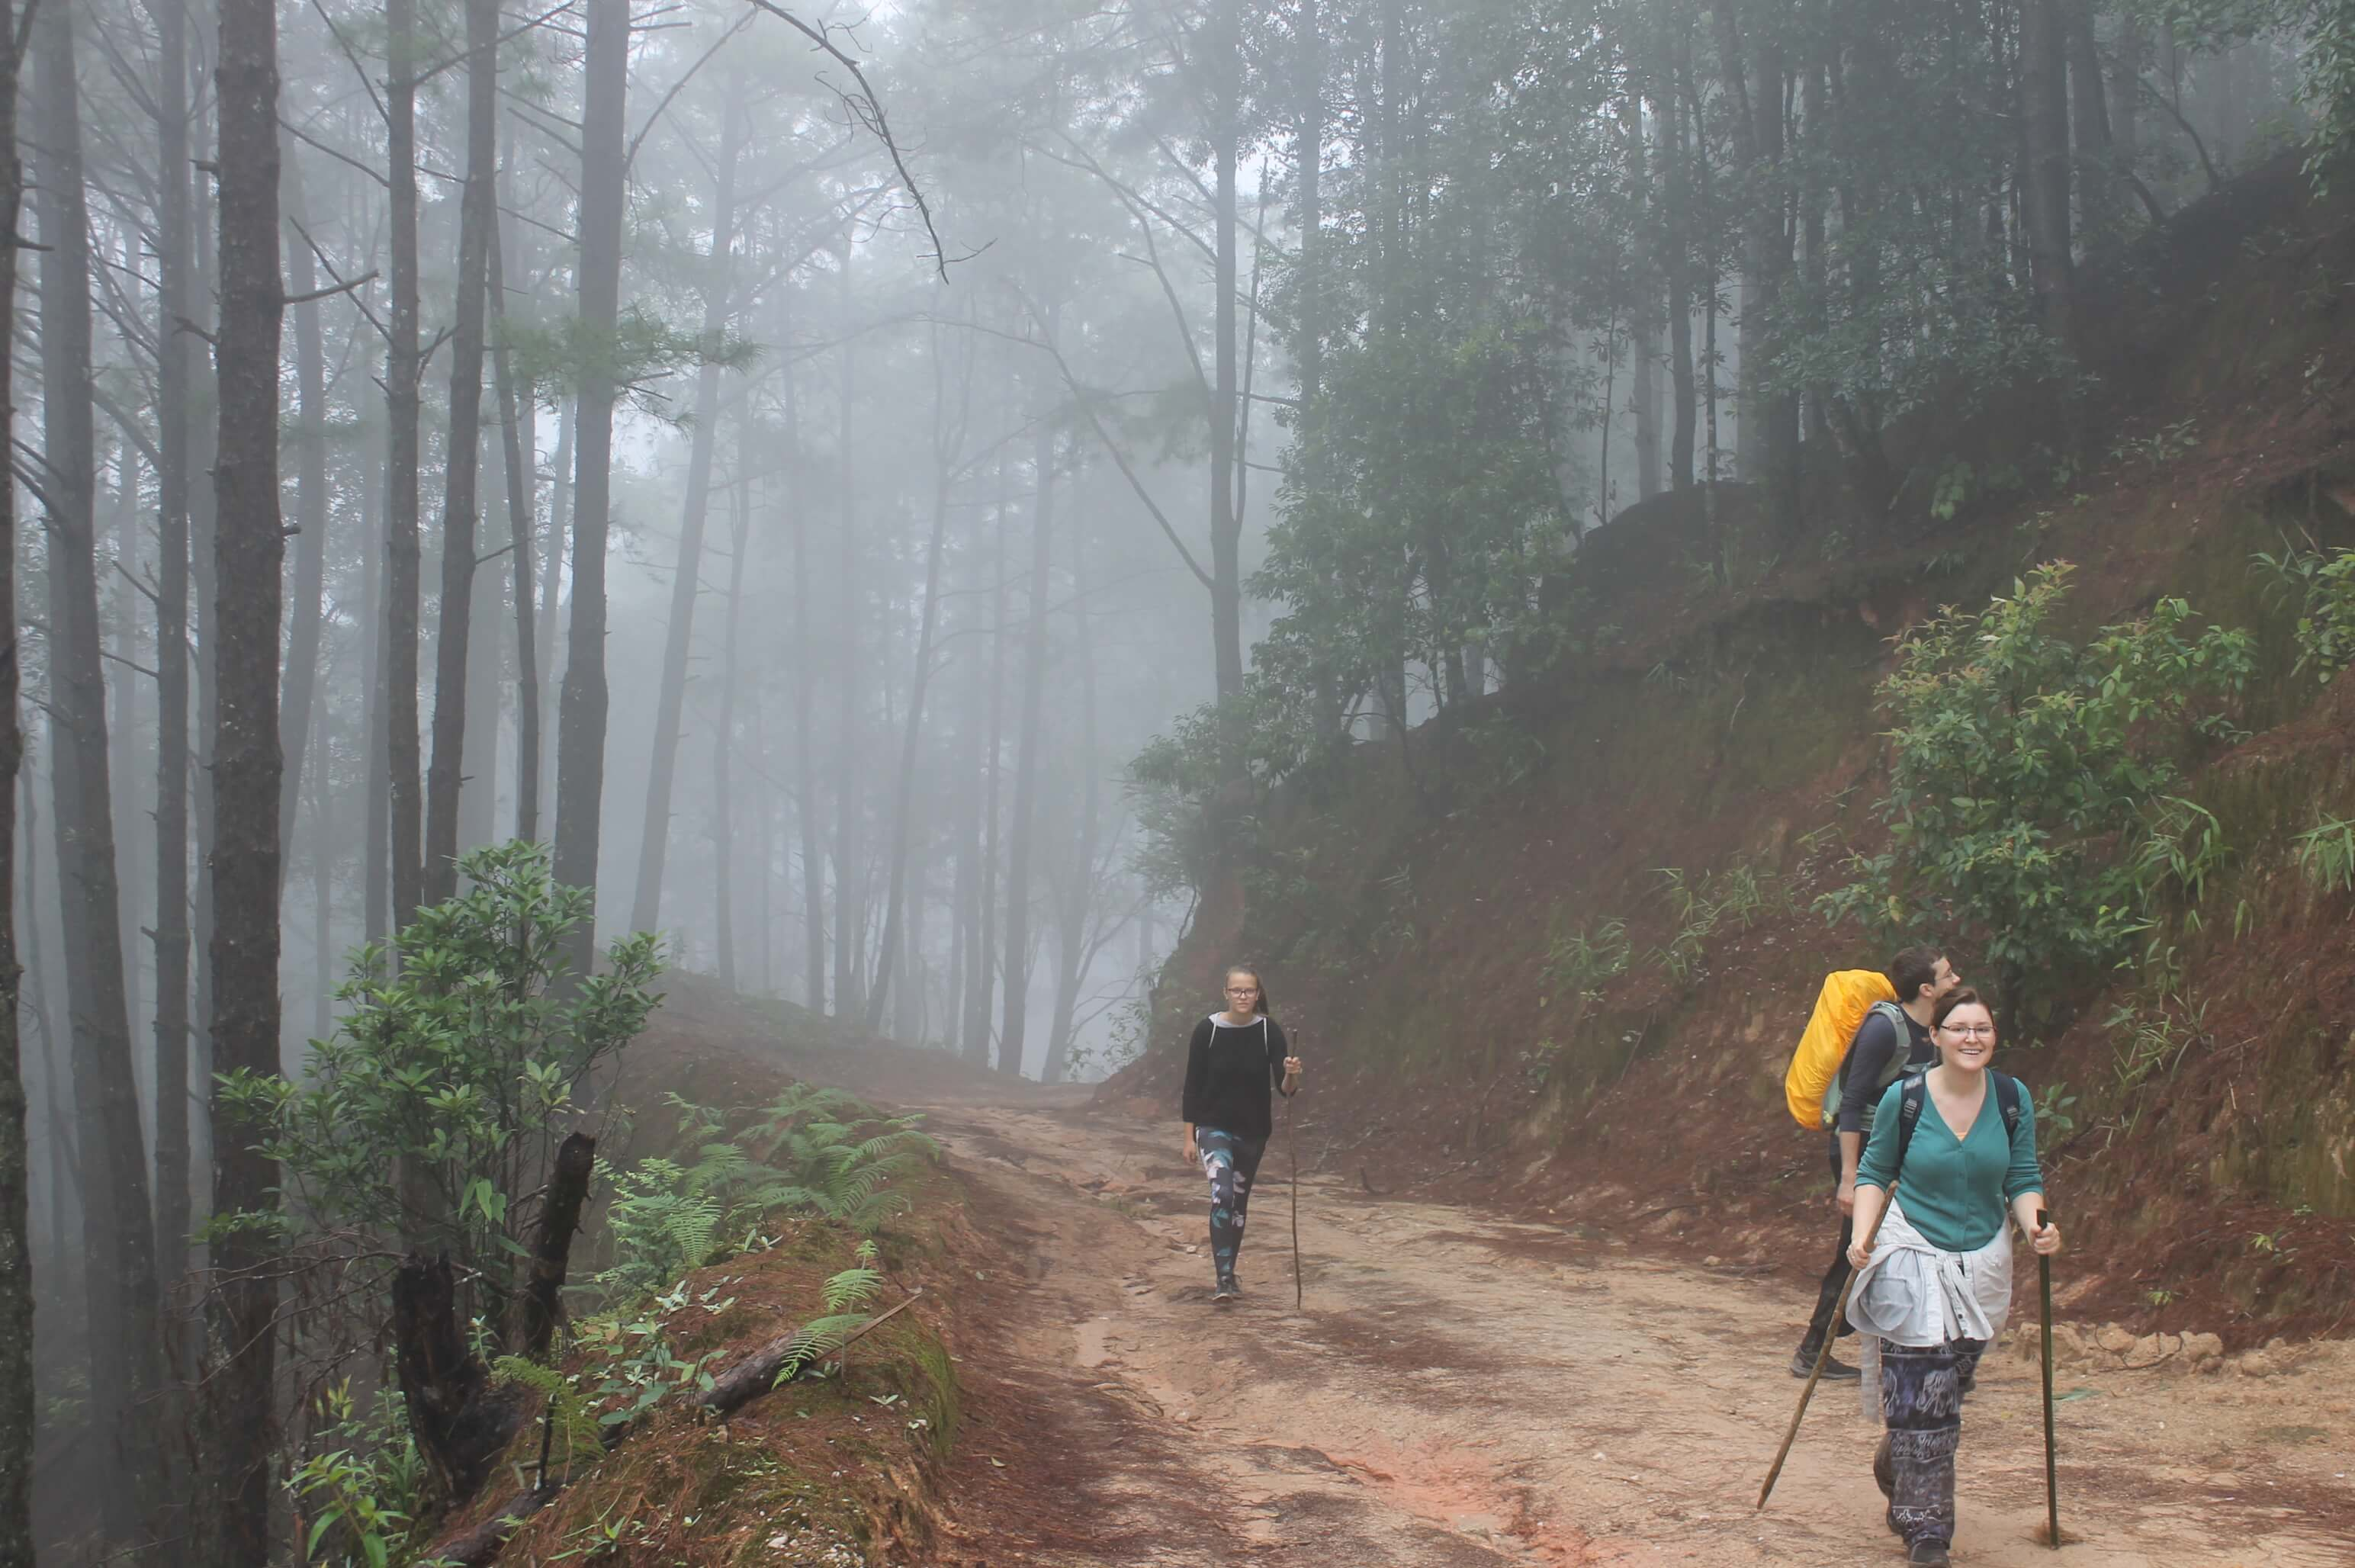 trekking rain forest morning Pha Daeng National Park chiang dao